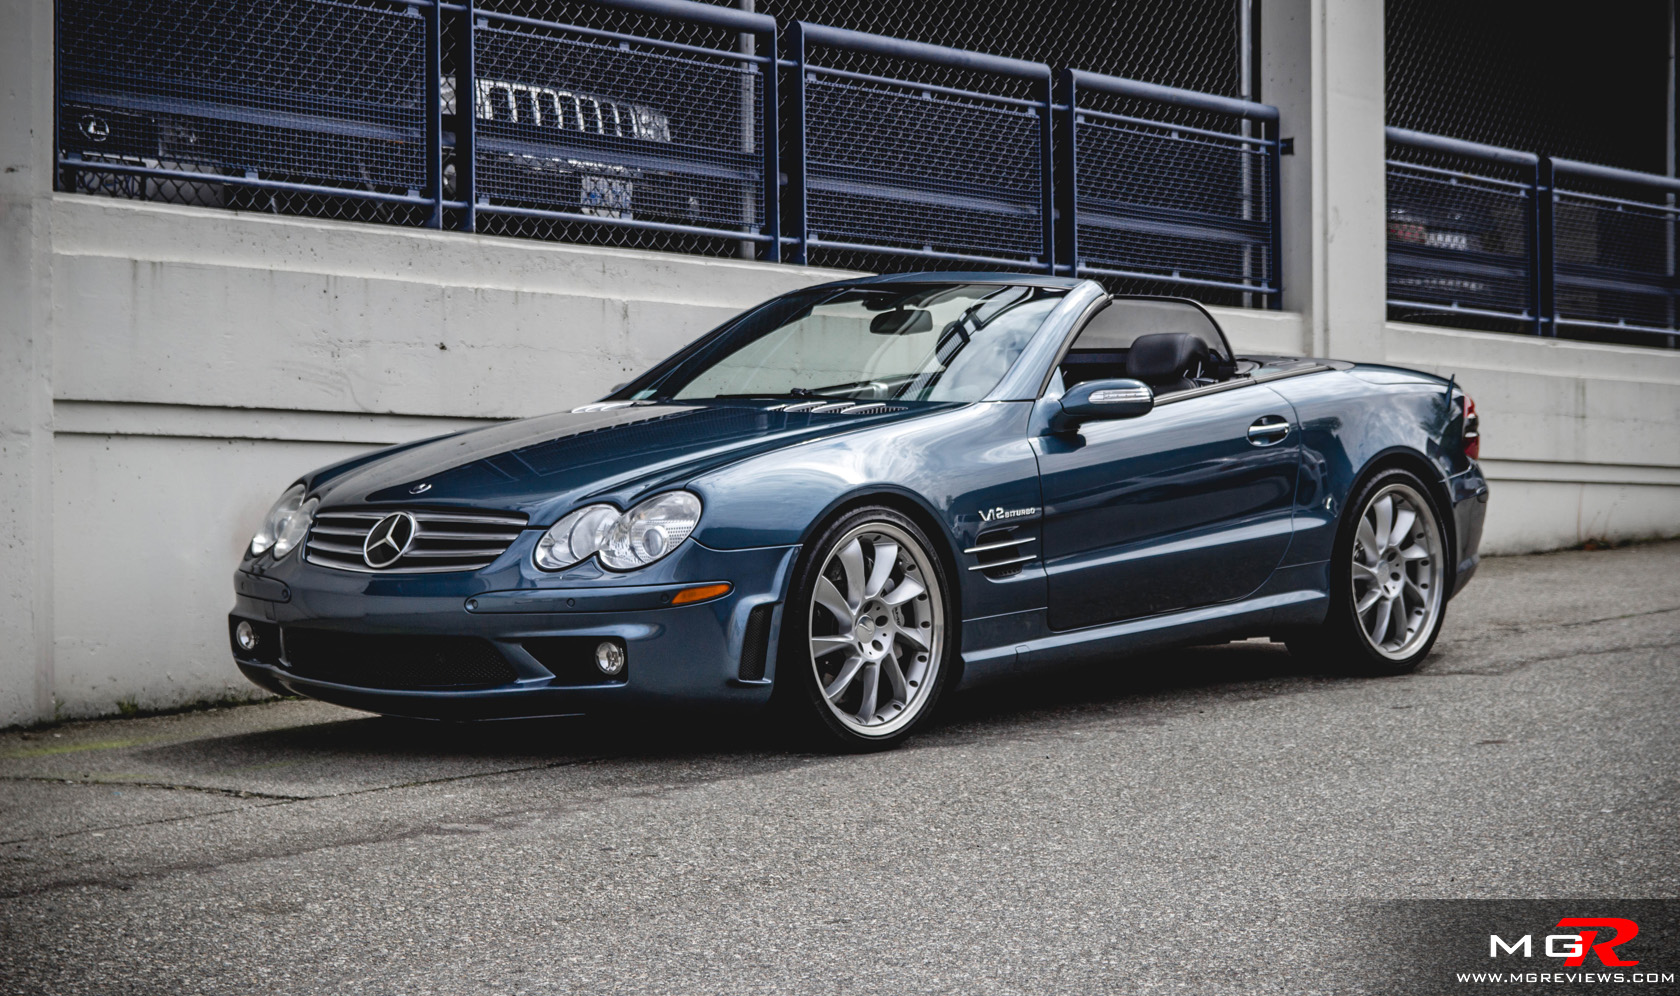 Review 2005 mercedes benz sl65 amg m g reviews for Sl65 mercedes benz